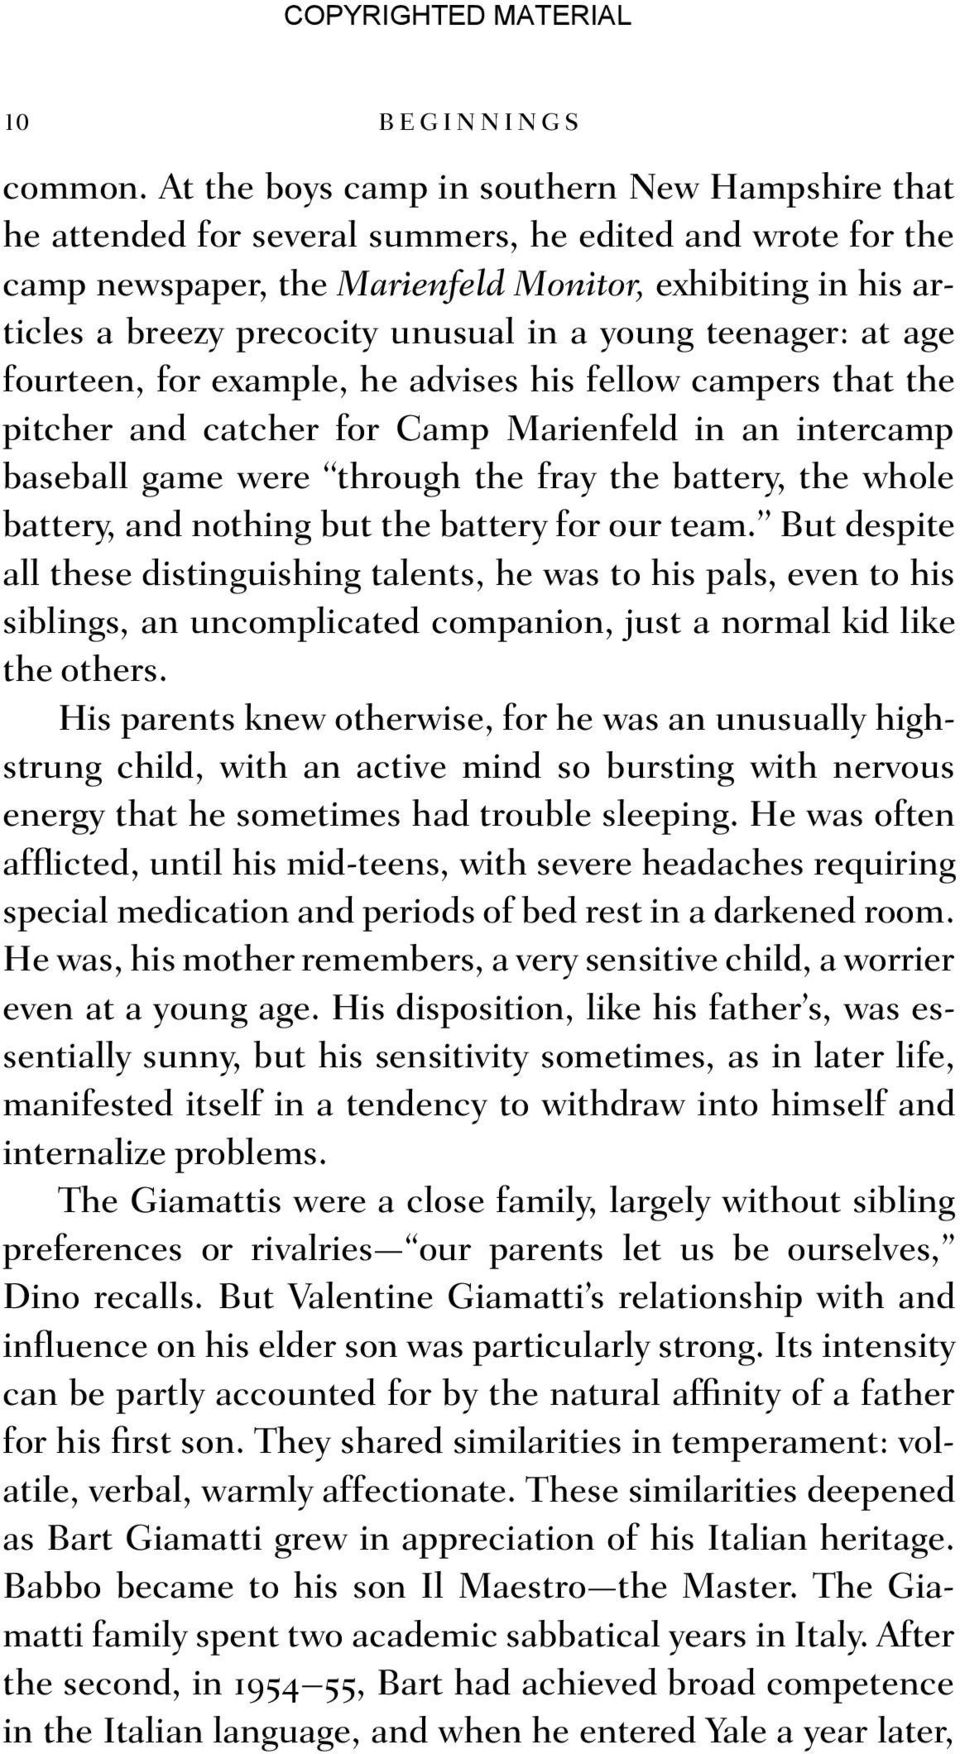 unusual in a young teenager: at age fourteen, for example, he advises his fellow campers that the pitcher and catcher for Camp Marienfeld in an intercamp baseball game were through the fray the